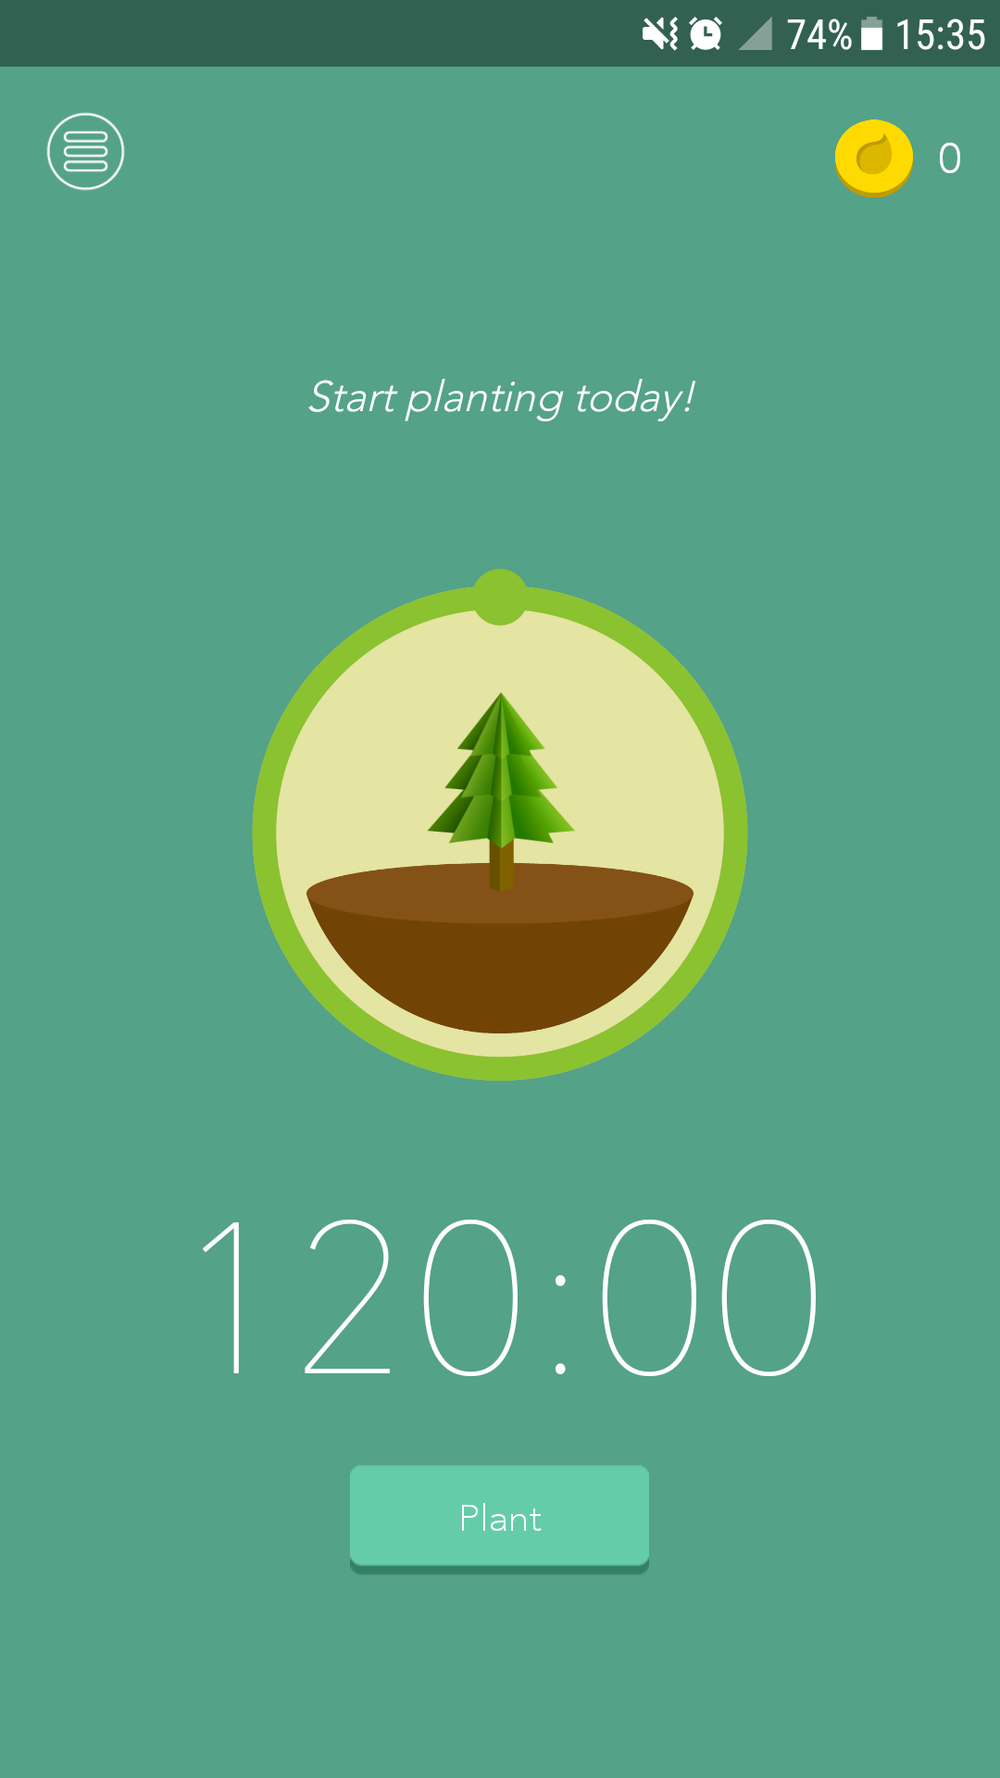 Turn Off -  Top Tip: I use this simple little app called Forest. The idea is you set a certain window of time to switch off your phone and 'plant' a seed which in turn flourishes into a tree. If you pick up your phone within that allotted time, your tree dies (sob). You can set up to two hours of down time and work towards 'growing' a forest. Originally created as an answer to phone-addicts, I now use this to set windows of work.Finalising that tech pack I've been putting off seems so simple when the mind has been focused on doing solely that.My biggest piece of advice would be to set it to a mere 10 minutes and be amazed at how much you can achieve in such a short space of time. You'll usually find within that small window you've gotten involved with your work that you'll wish to continue, and procrastination can float right on by.